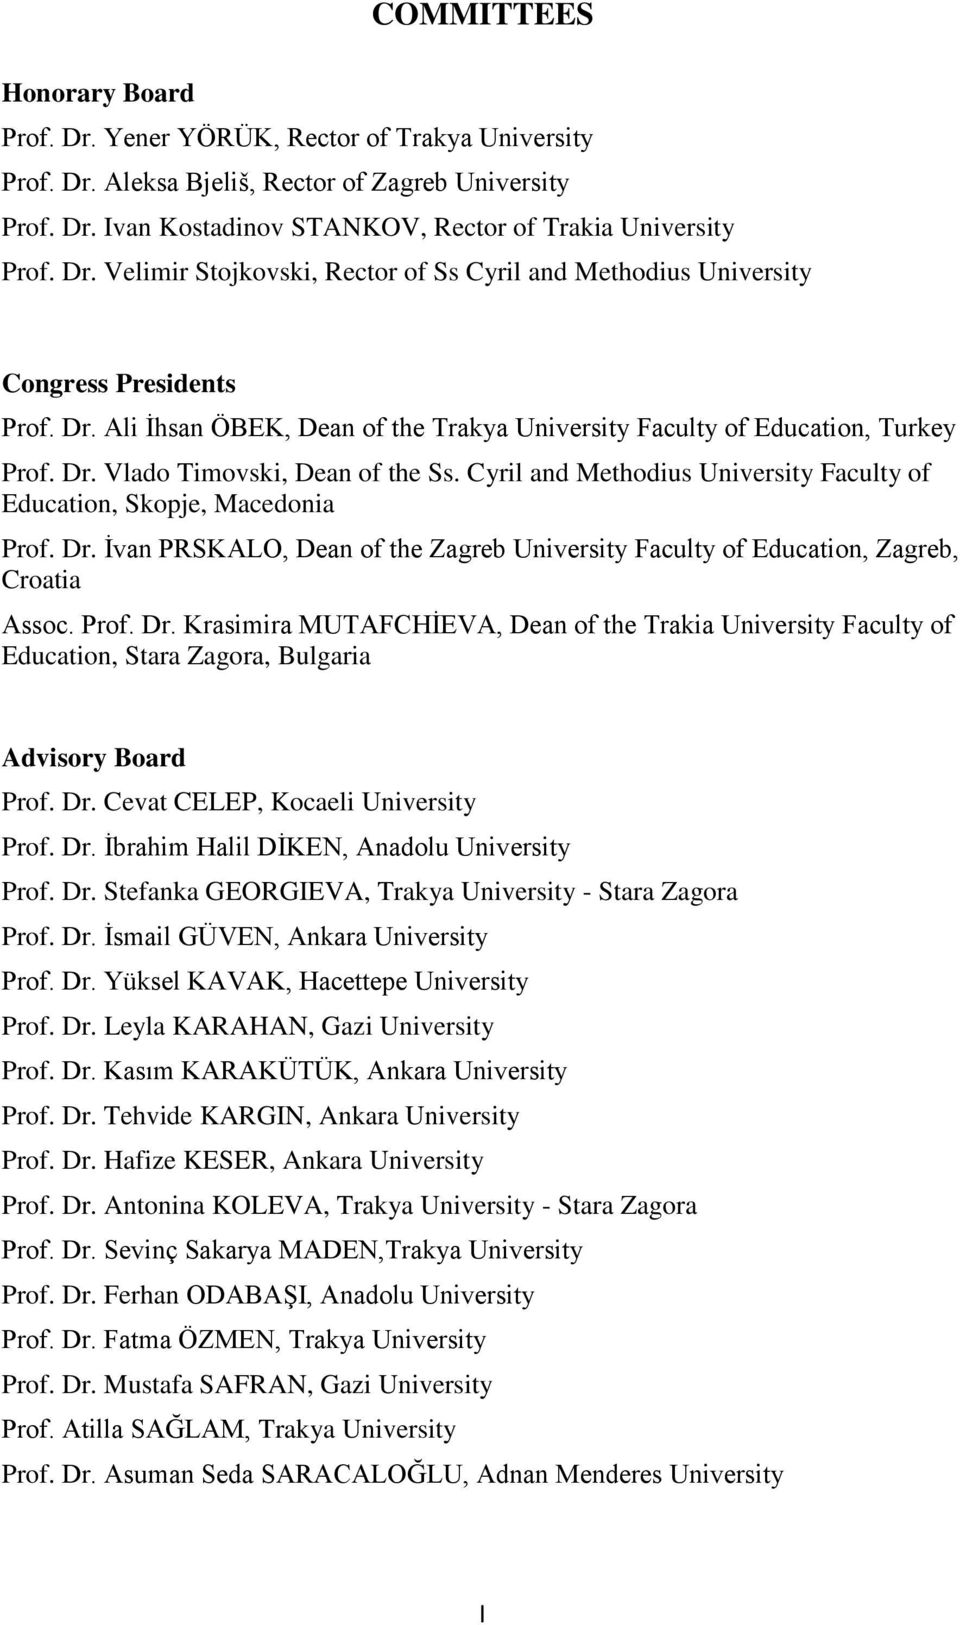 Cyril and Methodius University Faculty of Education, Skopje, Macedonia Prof. Dr. İvan PRSKALO, Dean of the Zagreb University Faculty of Education, Zagreb, Croatia Assoc. Prof. Dr. Krasimira MUTAFCHİEVA, Dean of the Trakia University Faculty of Education, Stara Zagora, Bulgaria Advisory Board Prof.